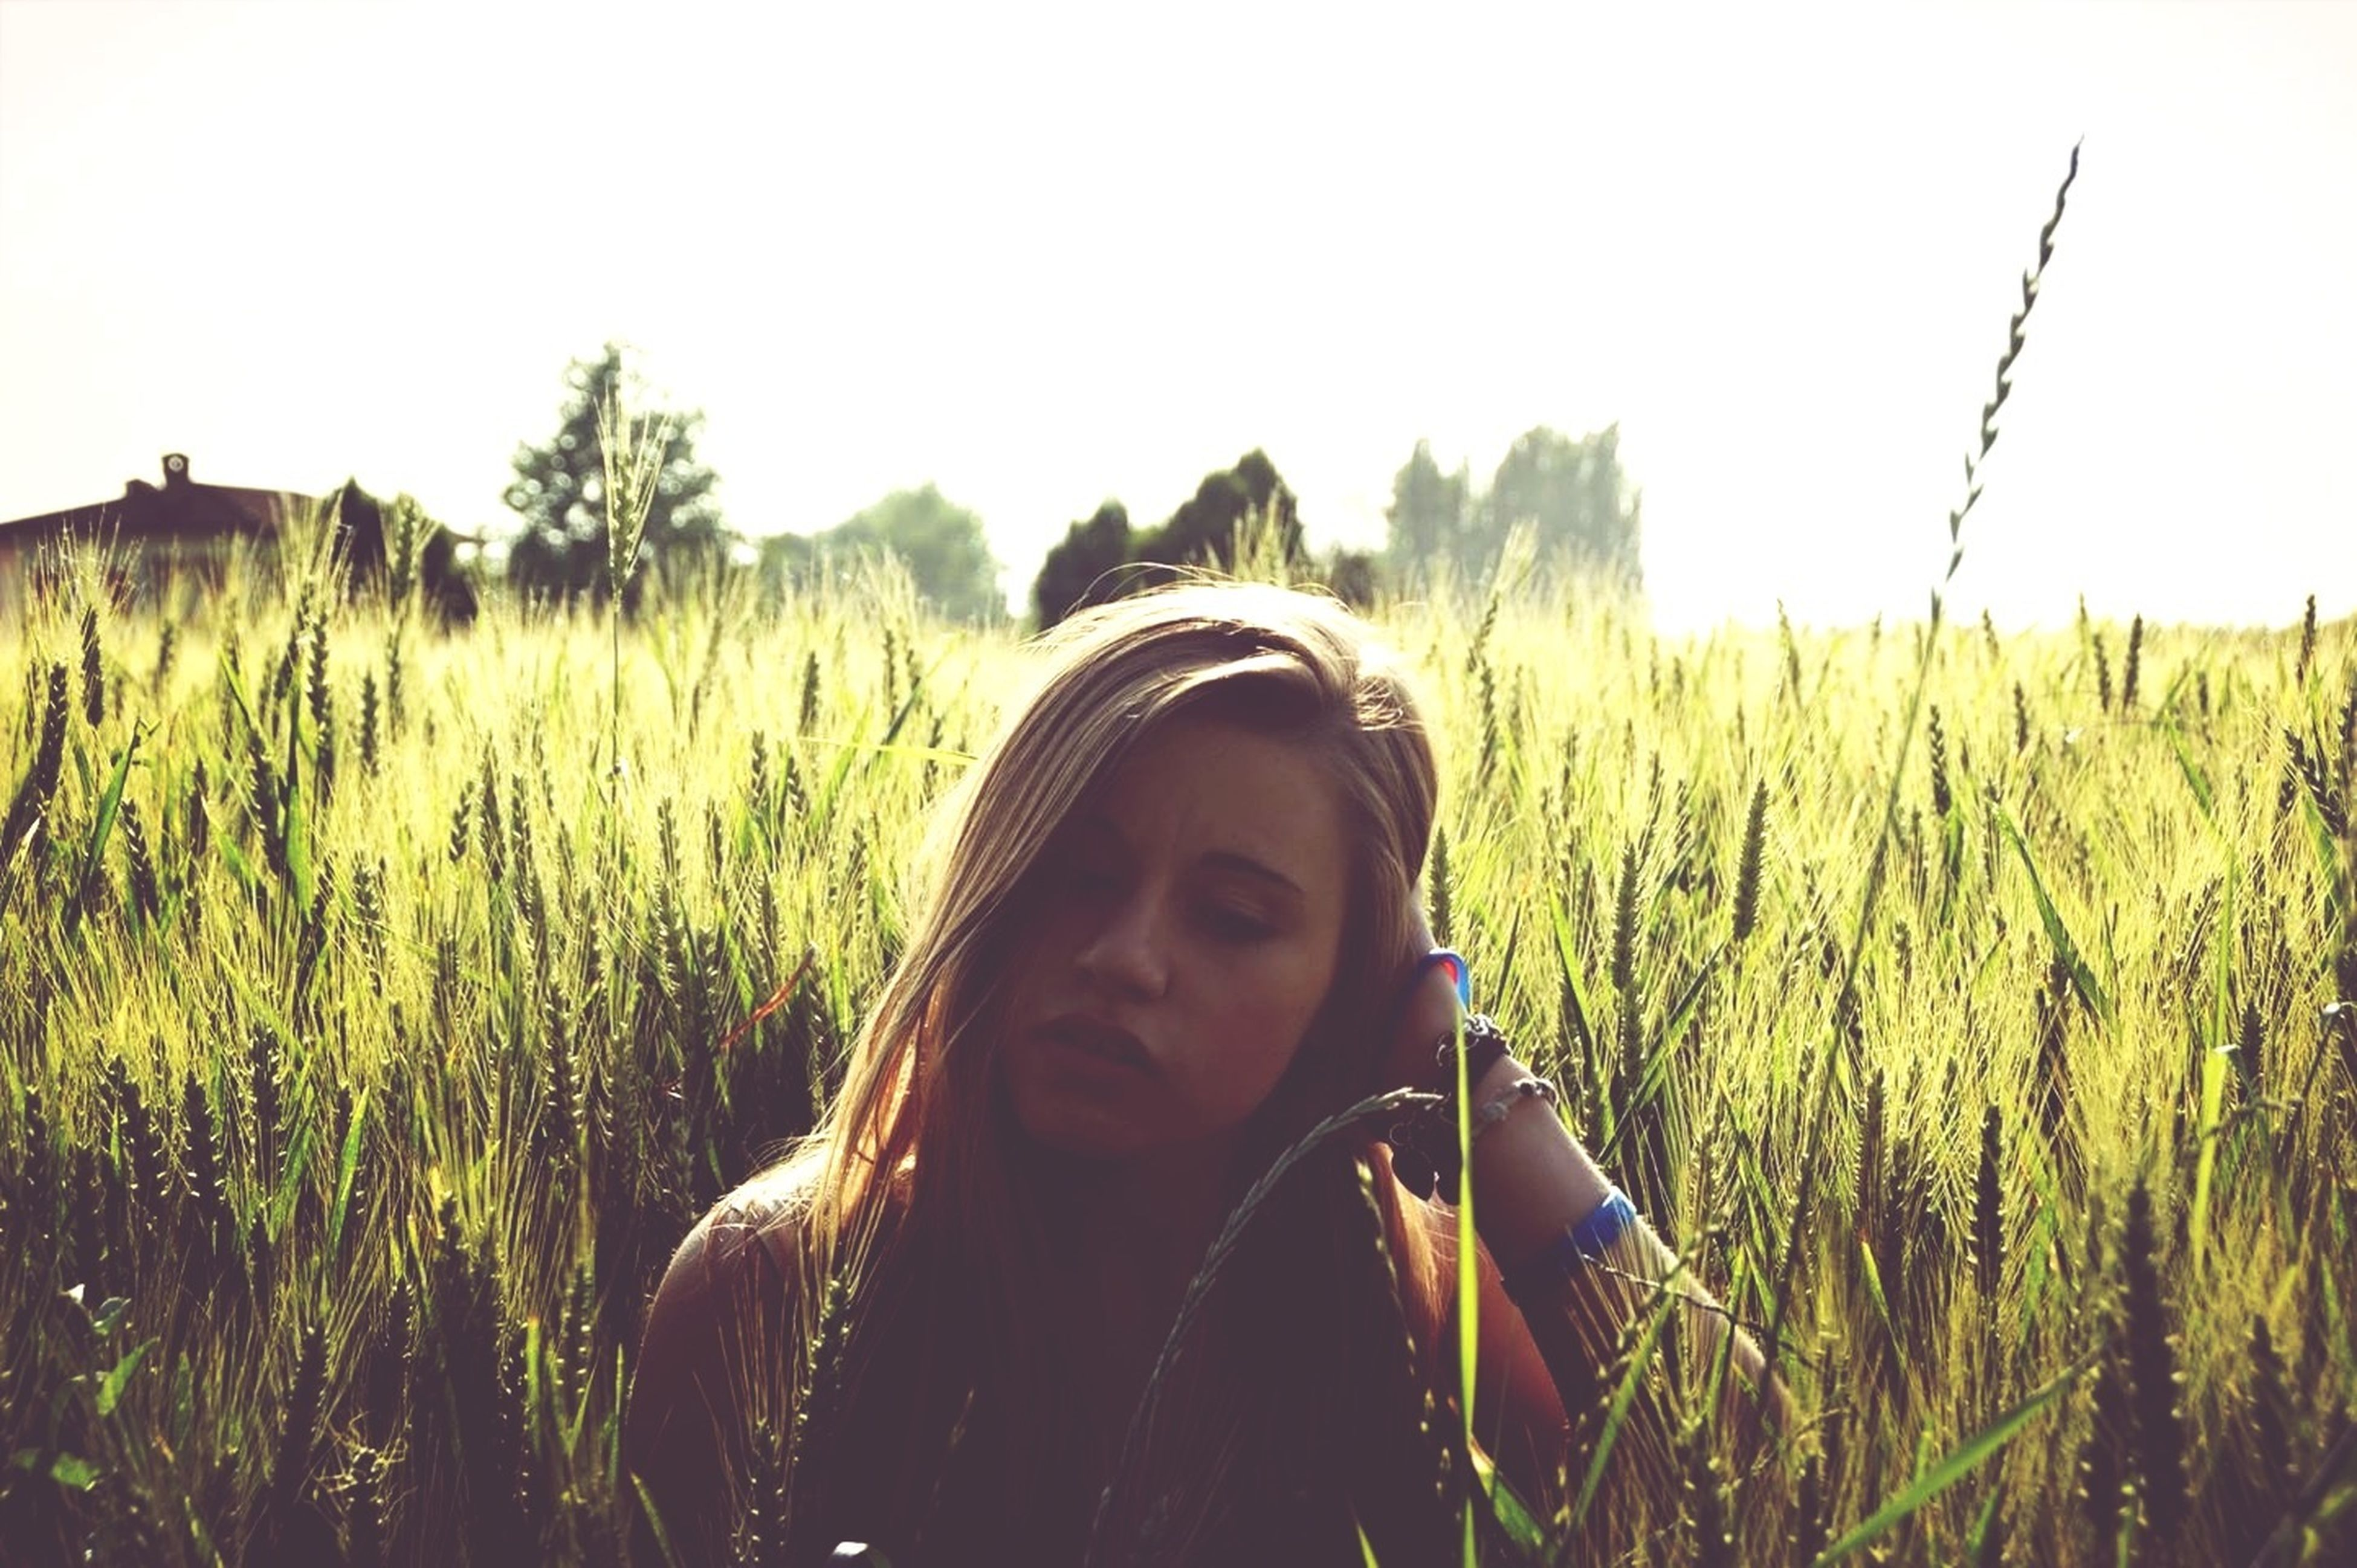 grass, field, clear sky, agriculture, lifestyles, rural scene, plant, farm, crop, growth, leisure activity, young adult, landscape, nature, standing, casual clothing, grassy, copy space